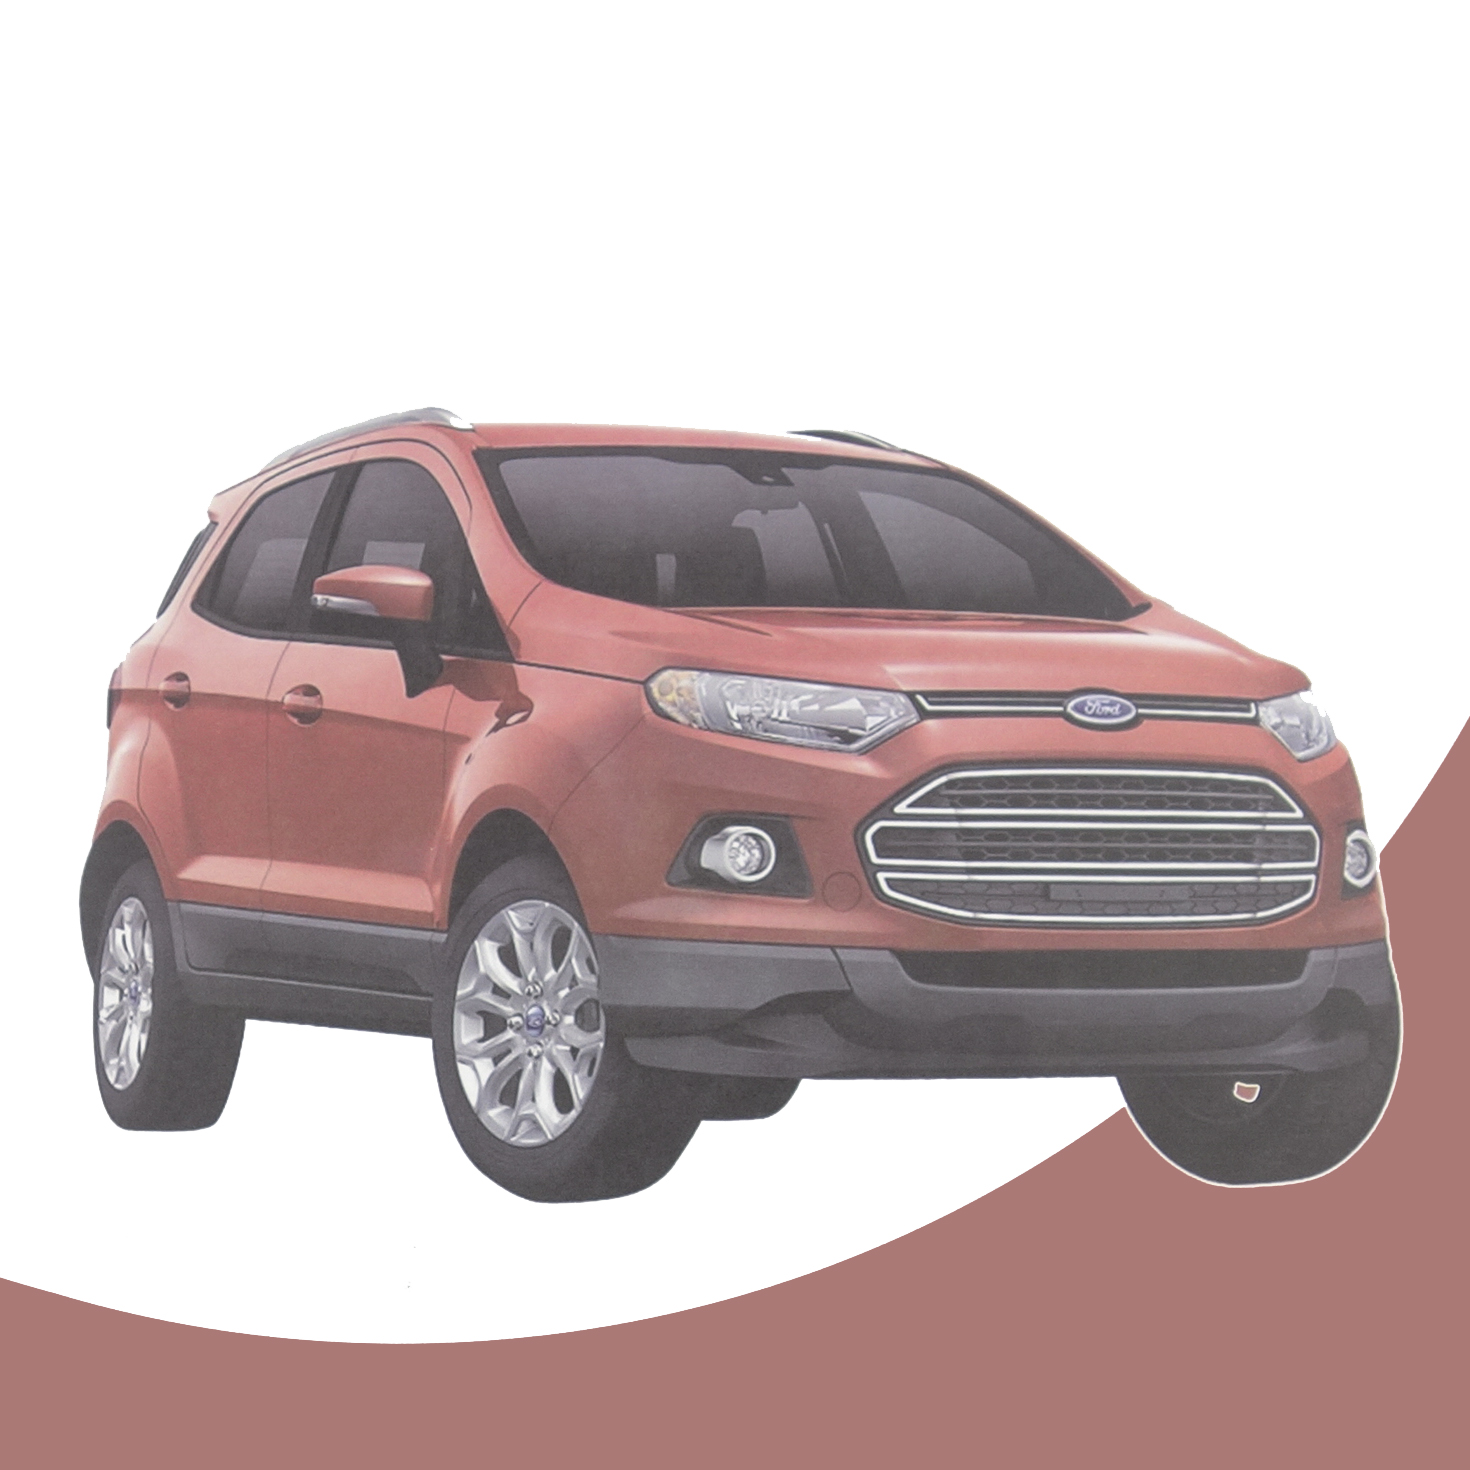 Suv Cars Page 7: DIY 1:24 FORD Ecosport SUV Car Paper Model Assemble Hand